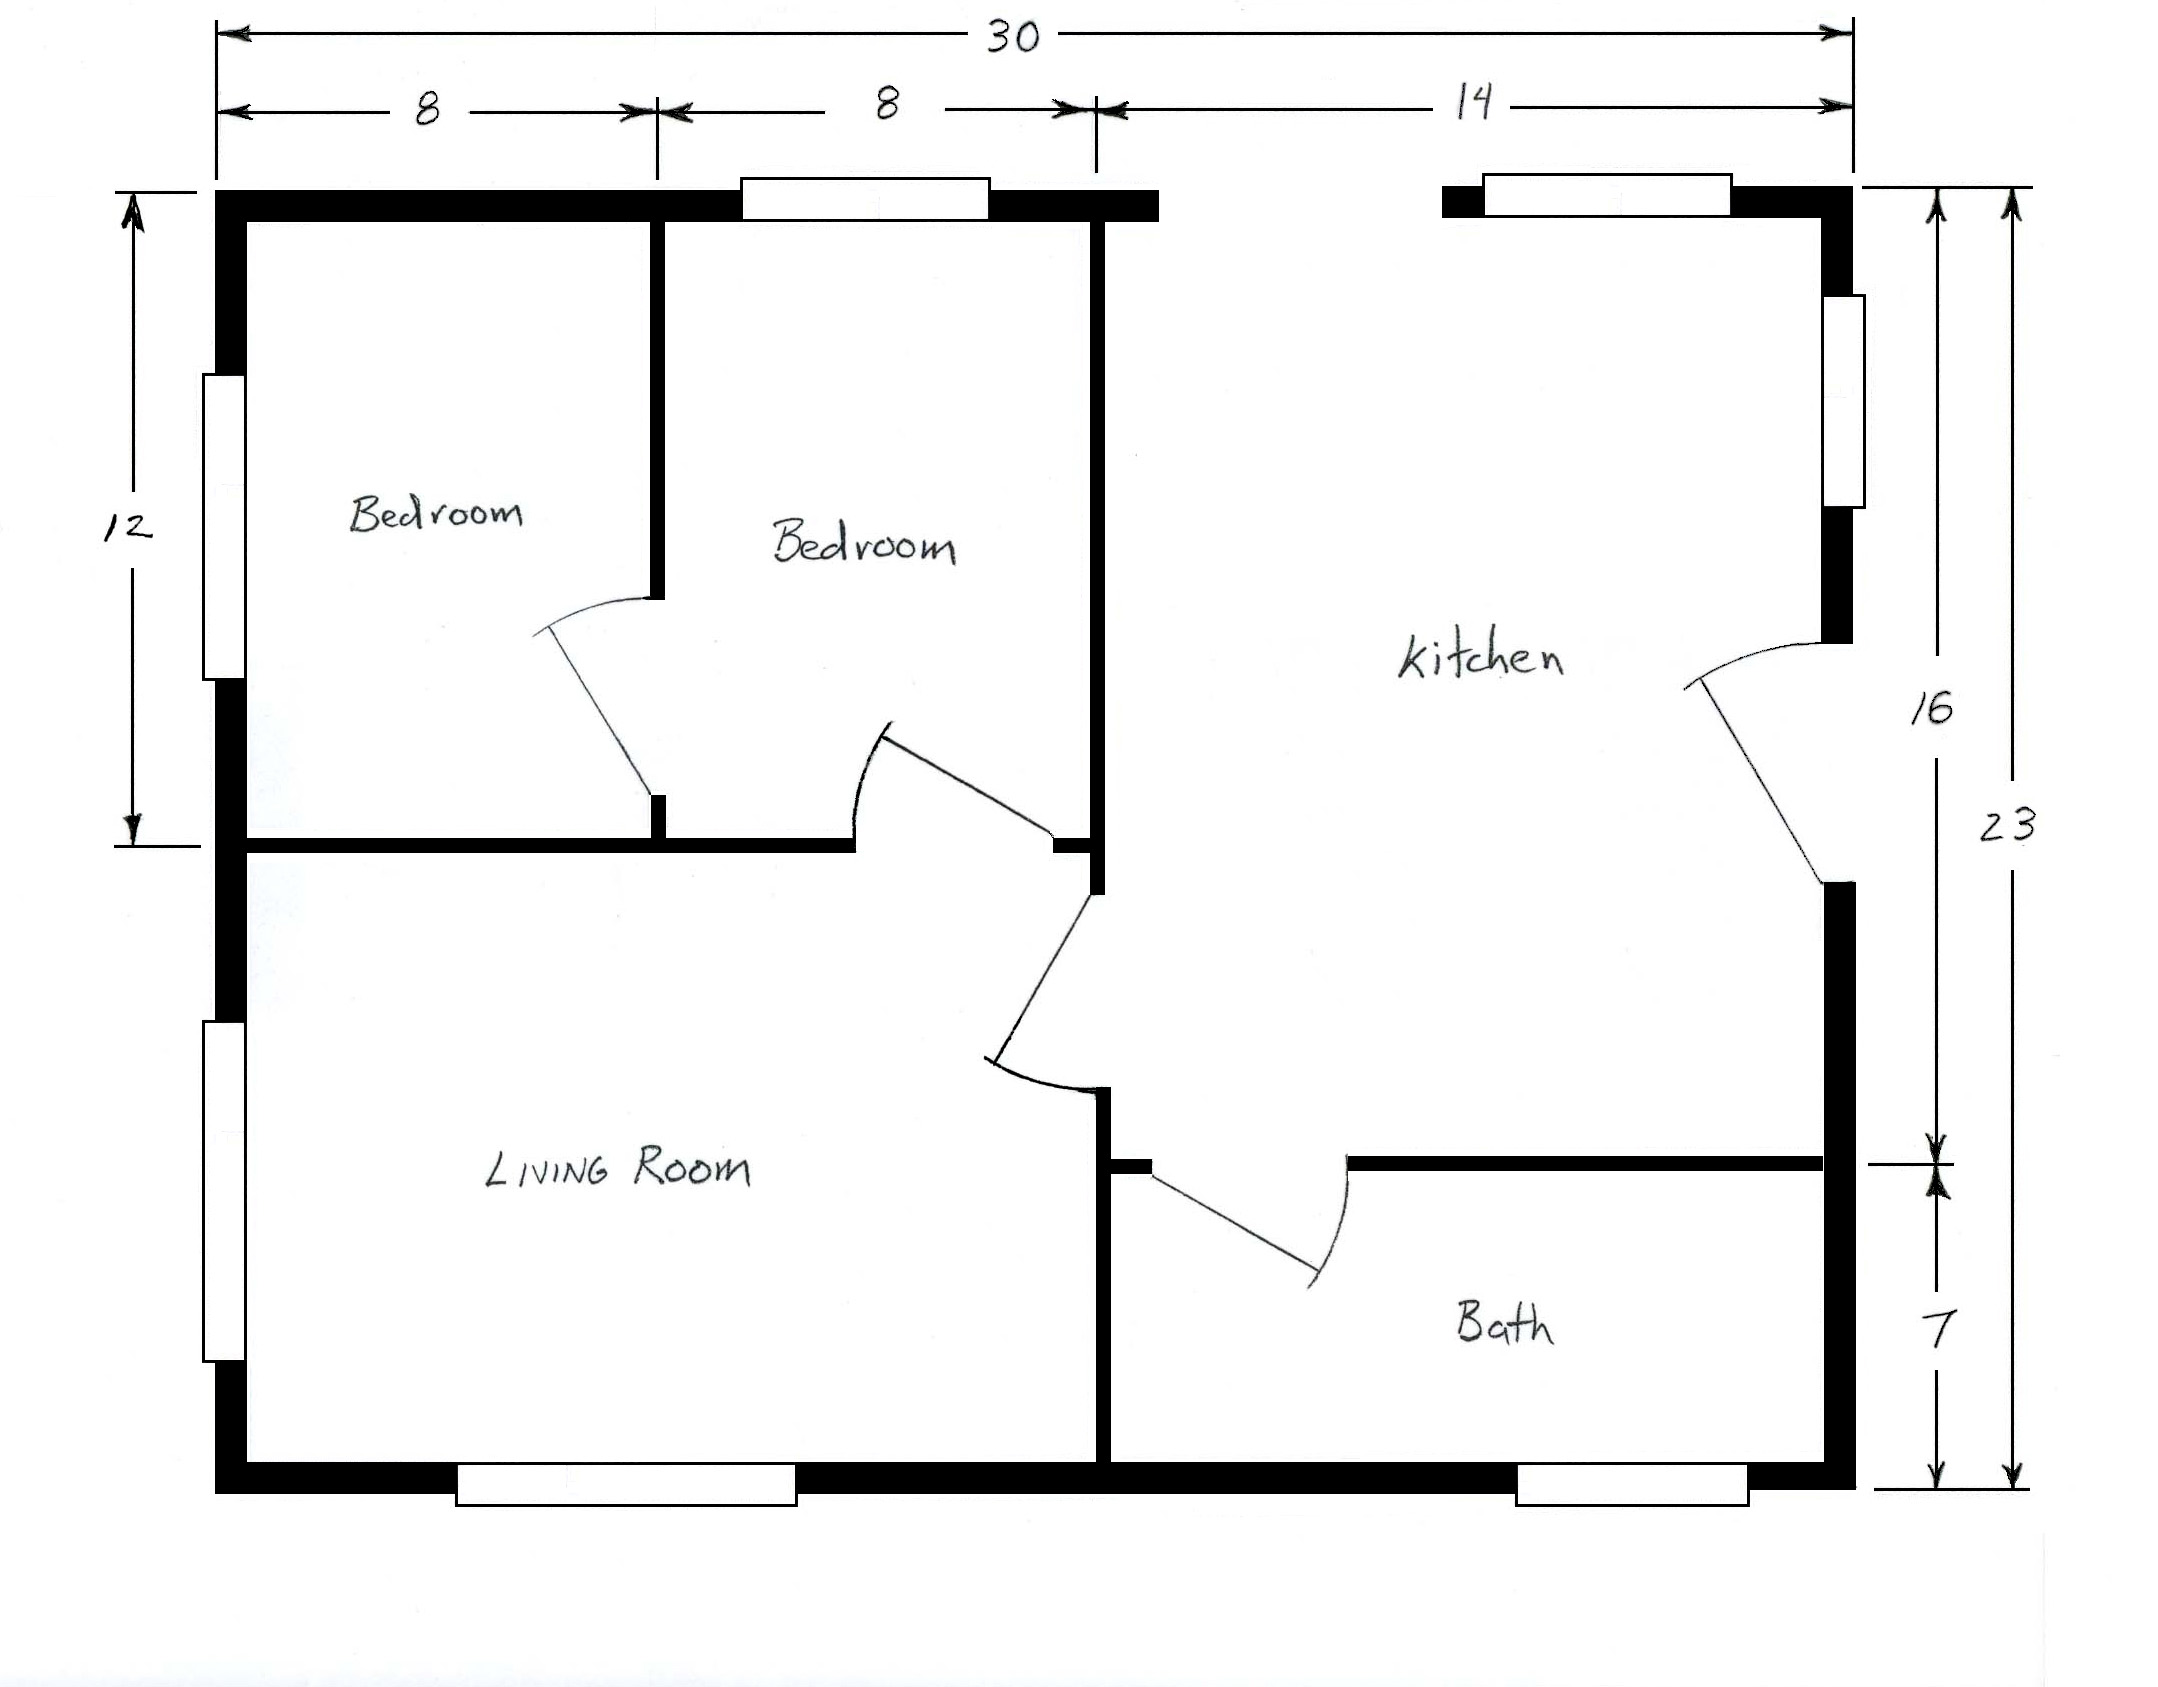 Sample building floor plans floor plans for Sample blueprints of a house